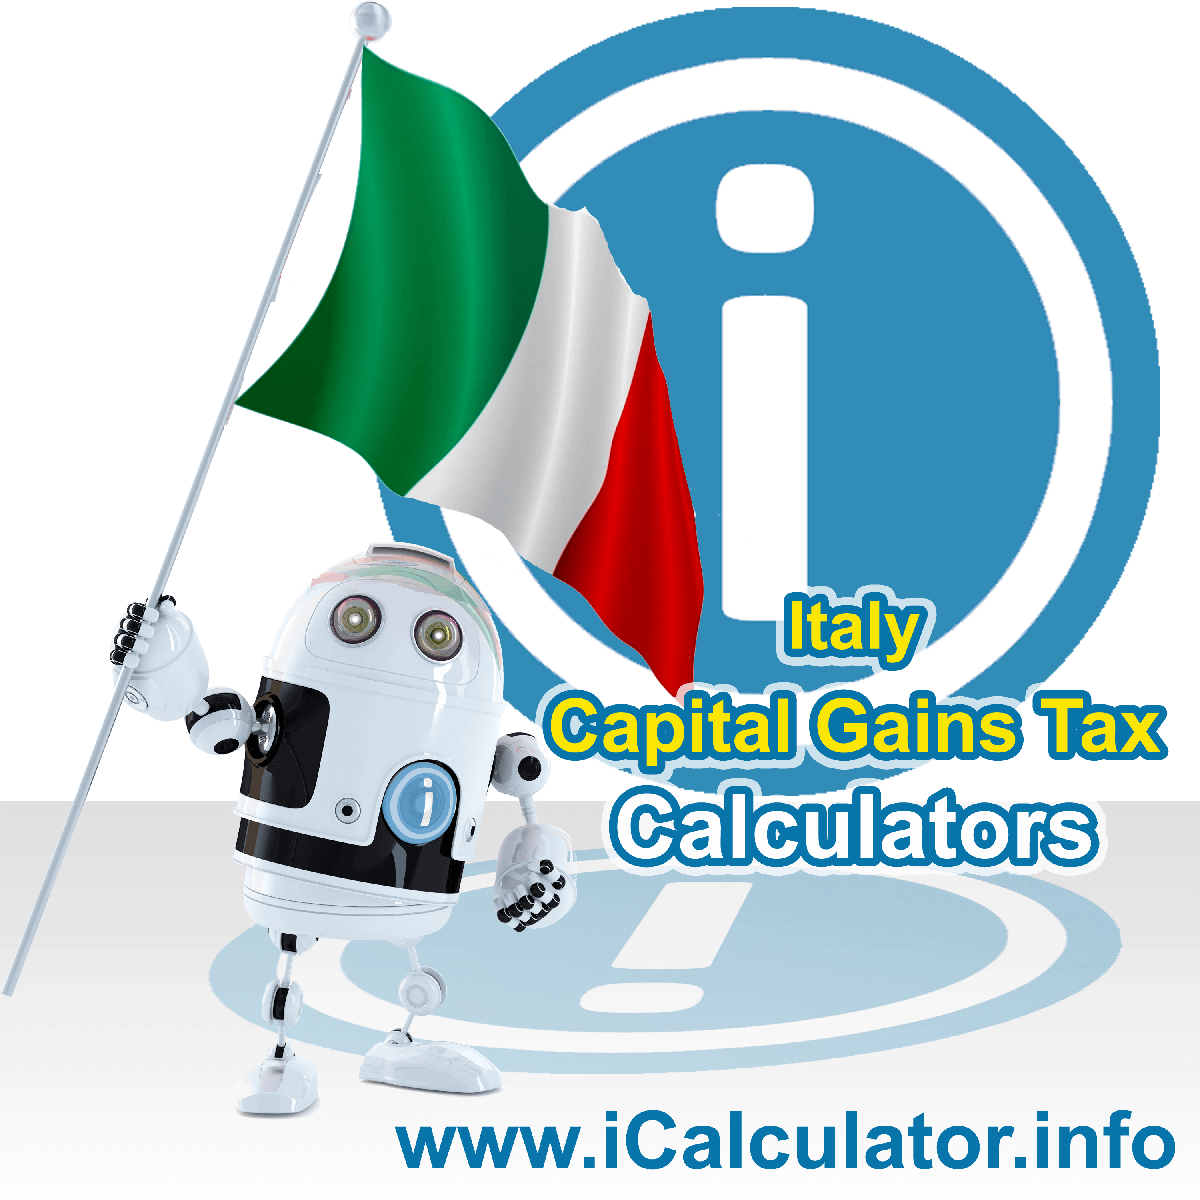 Italy Capital Gains Tax Calculator. This image shows the Italy flag and information relating to the capital gains tax rate formula used for calculating Capital Gains Tax in Italy using the Italy Capital Gains Tax Calculator in 2020